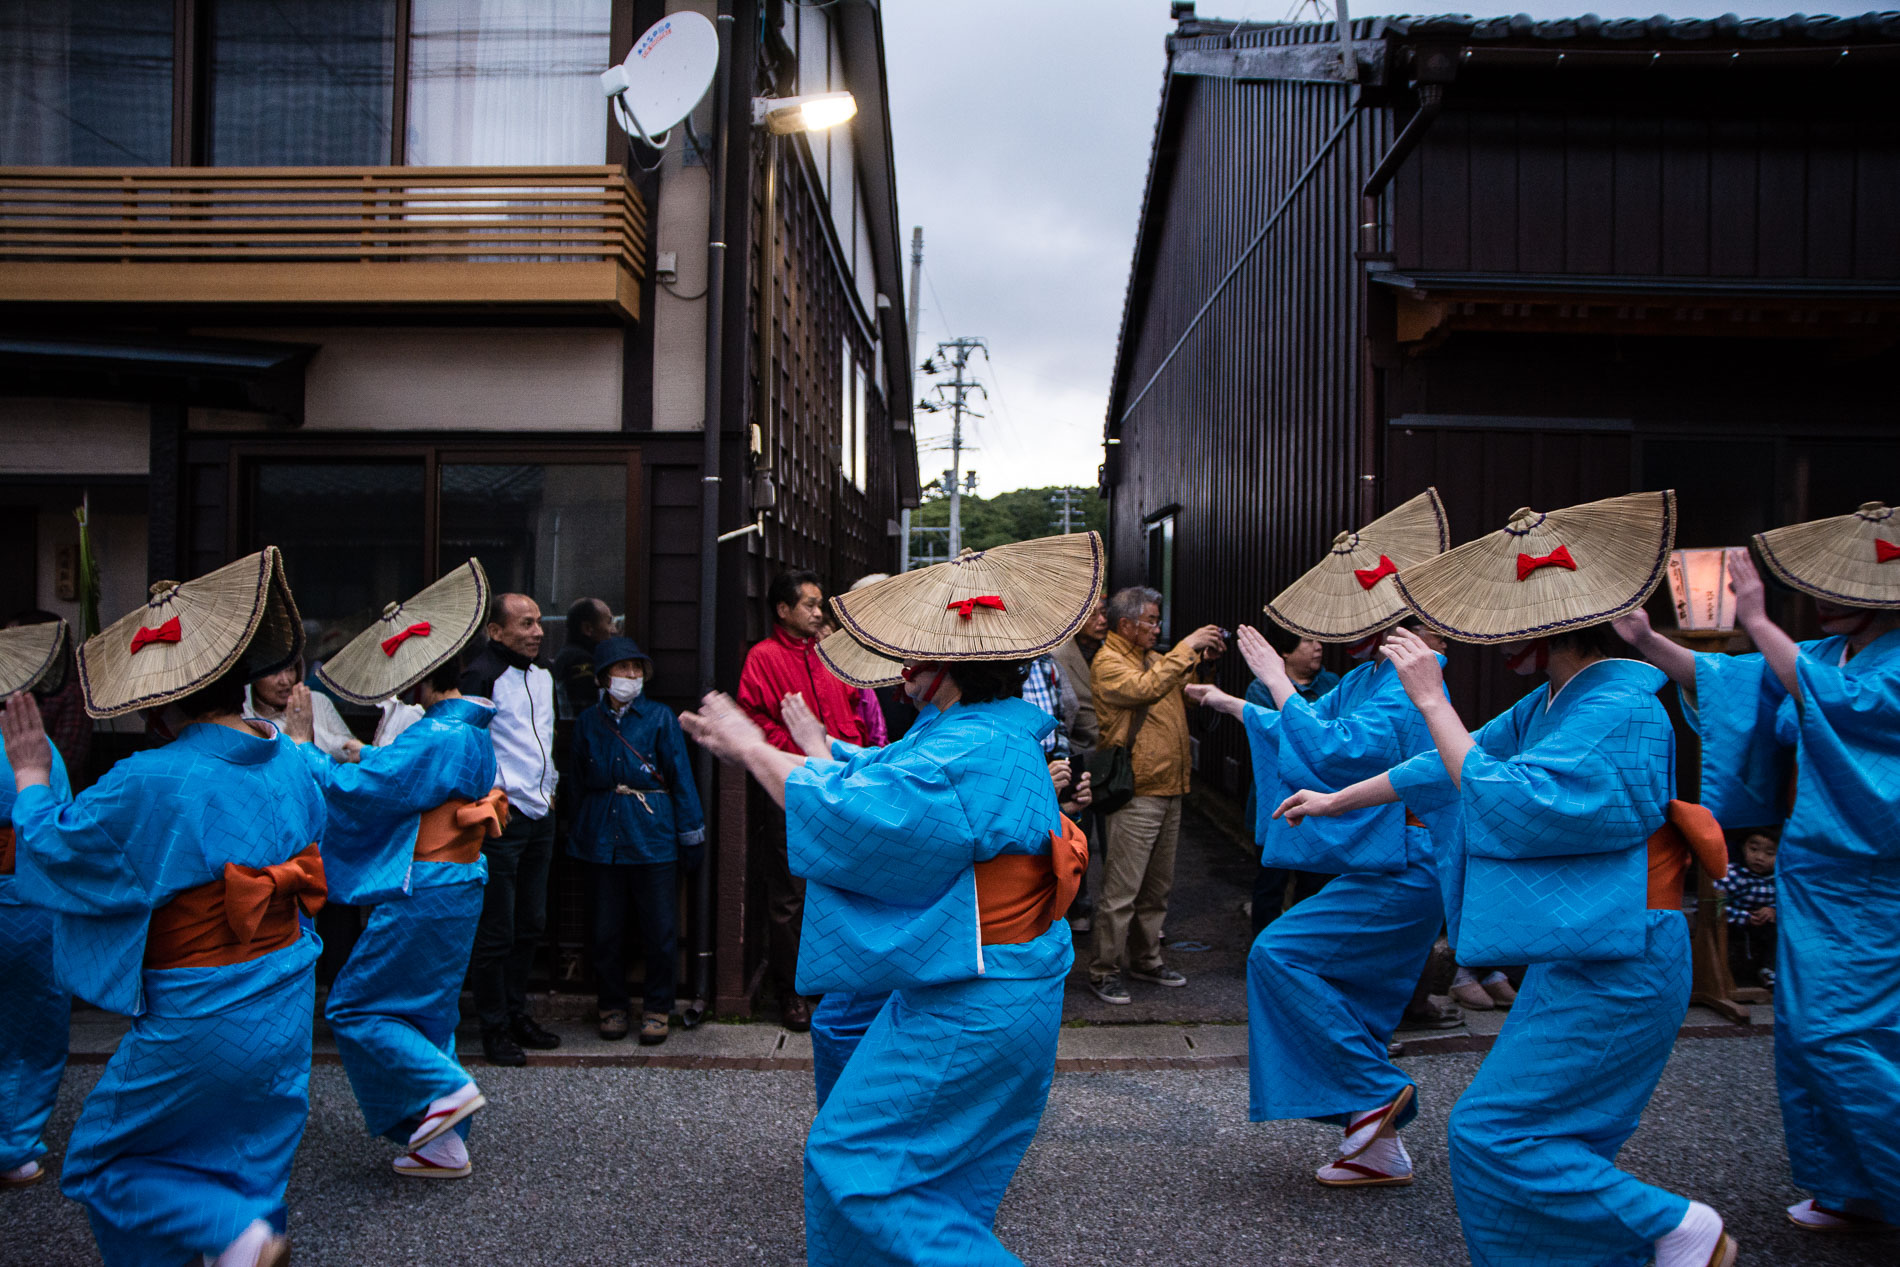 Sado Island and Its Traditional Culture: Yoi No Mai Festival and Noh Theater